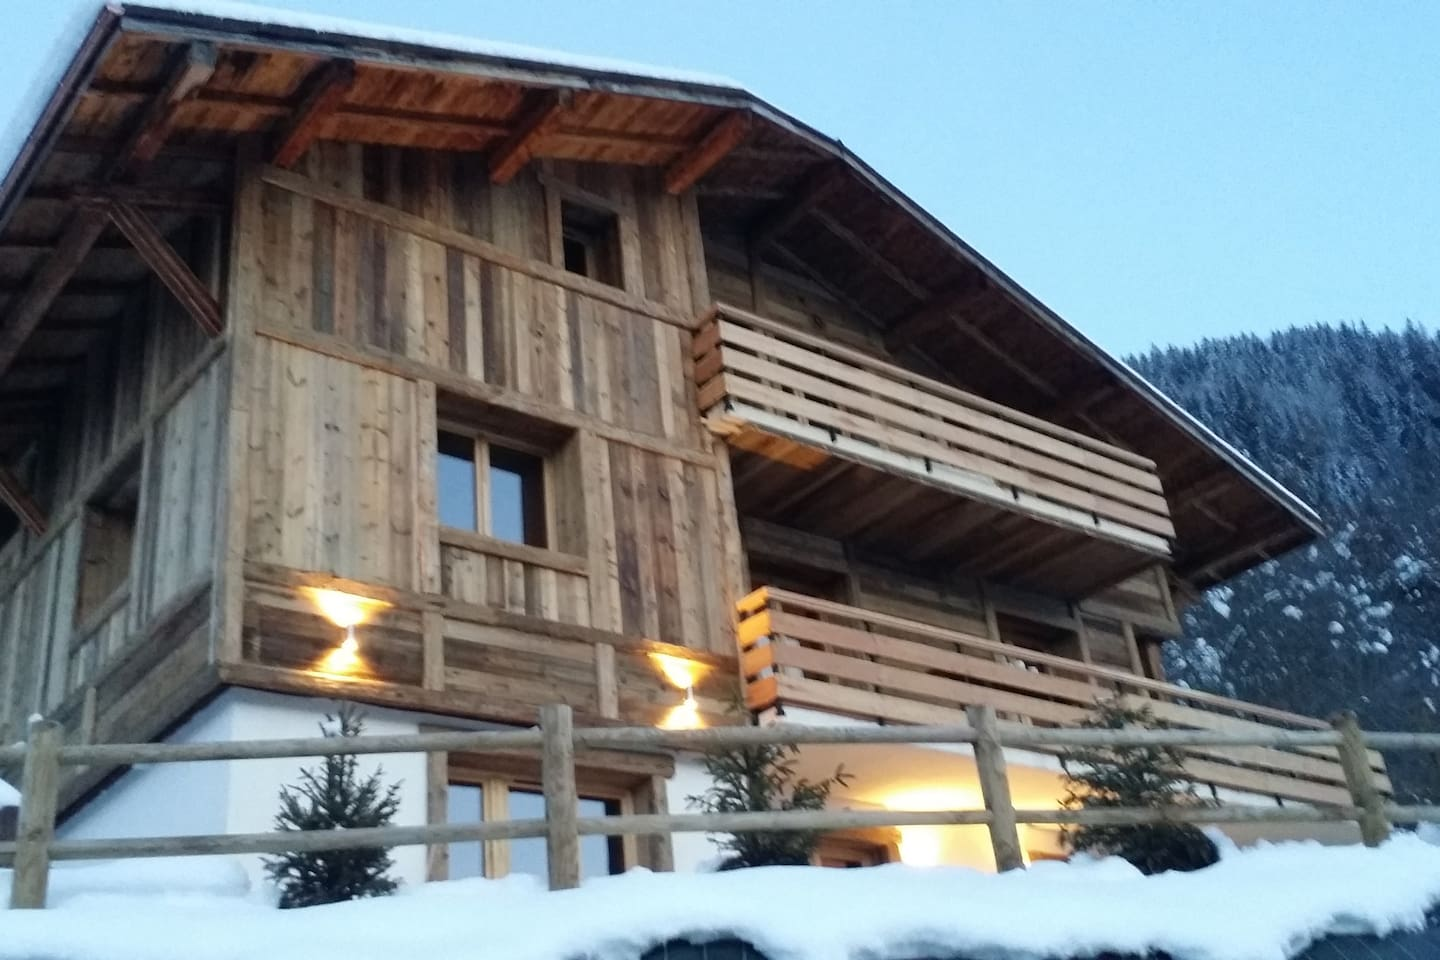 Luxury Saint Gervais chalet apartment with hot tub and stunning mountain views. Winter and summer bliss!